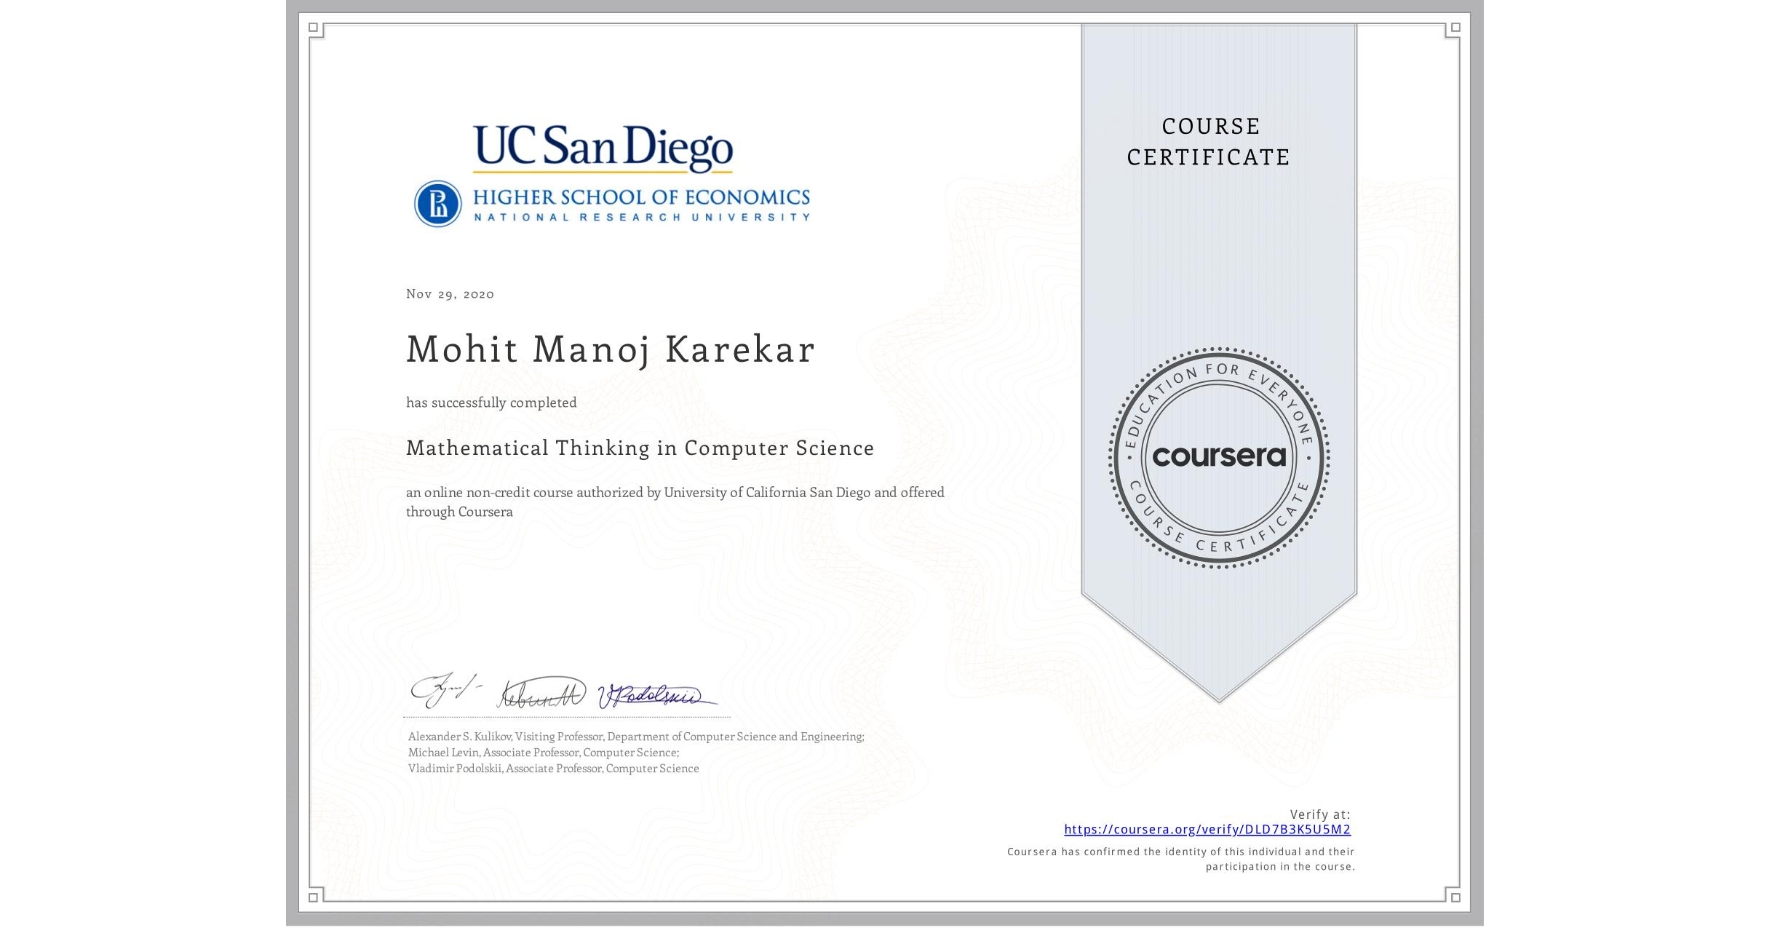 View certificate for Mohit Manoj Karekar, Mathematical Thinking in Computer Science, an online non-credit course authorized by University of California San Diego & National Research University Higher School of Economics and offered through Coursera